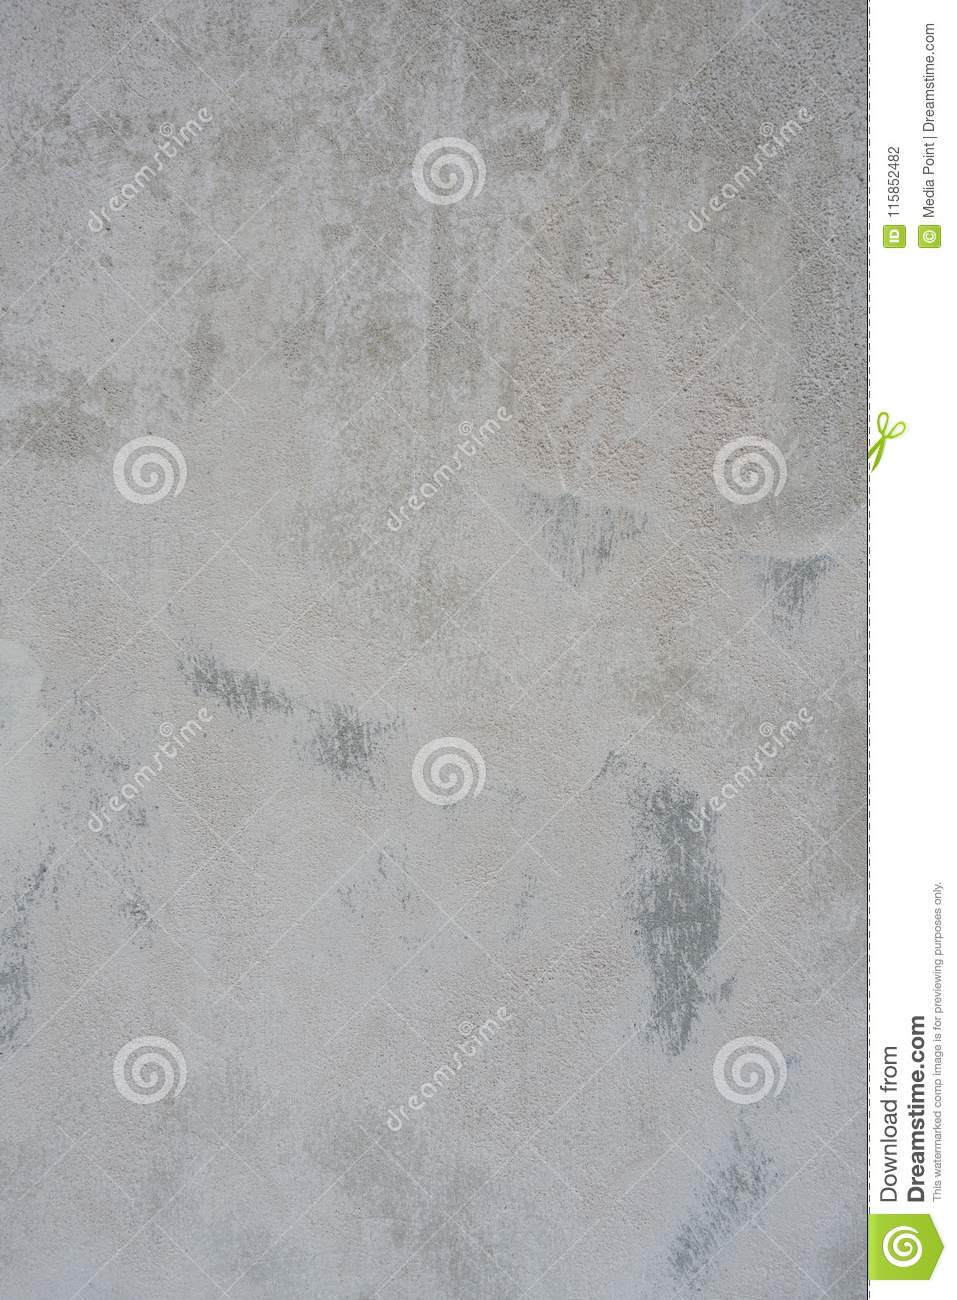 Abstract wall surface with modeling effects and lights and darks backgrop wallpaper